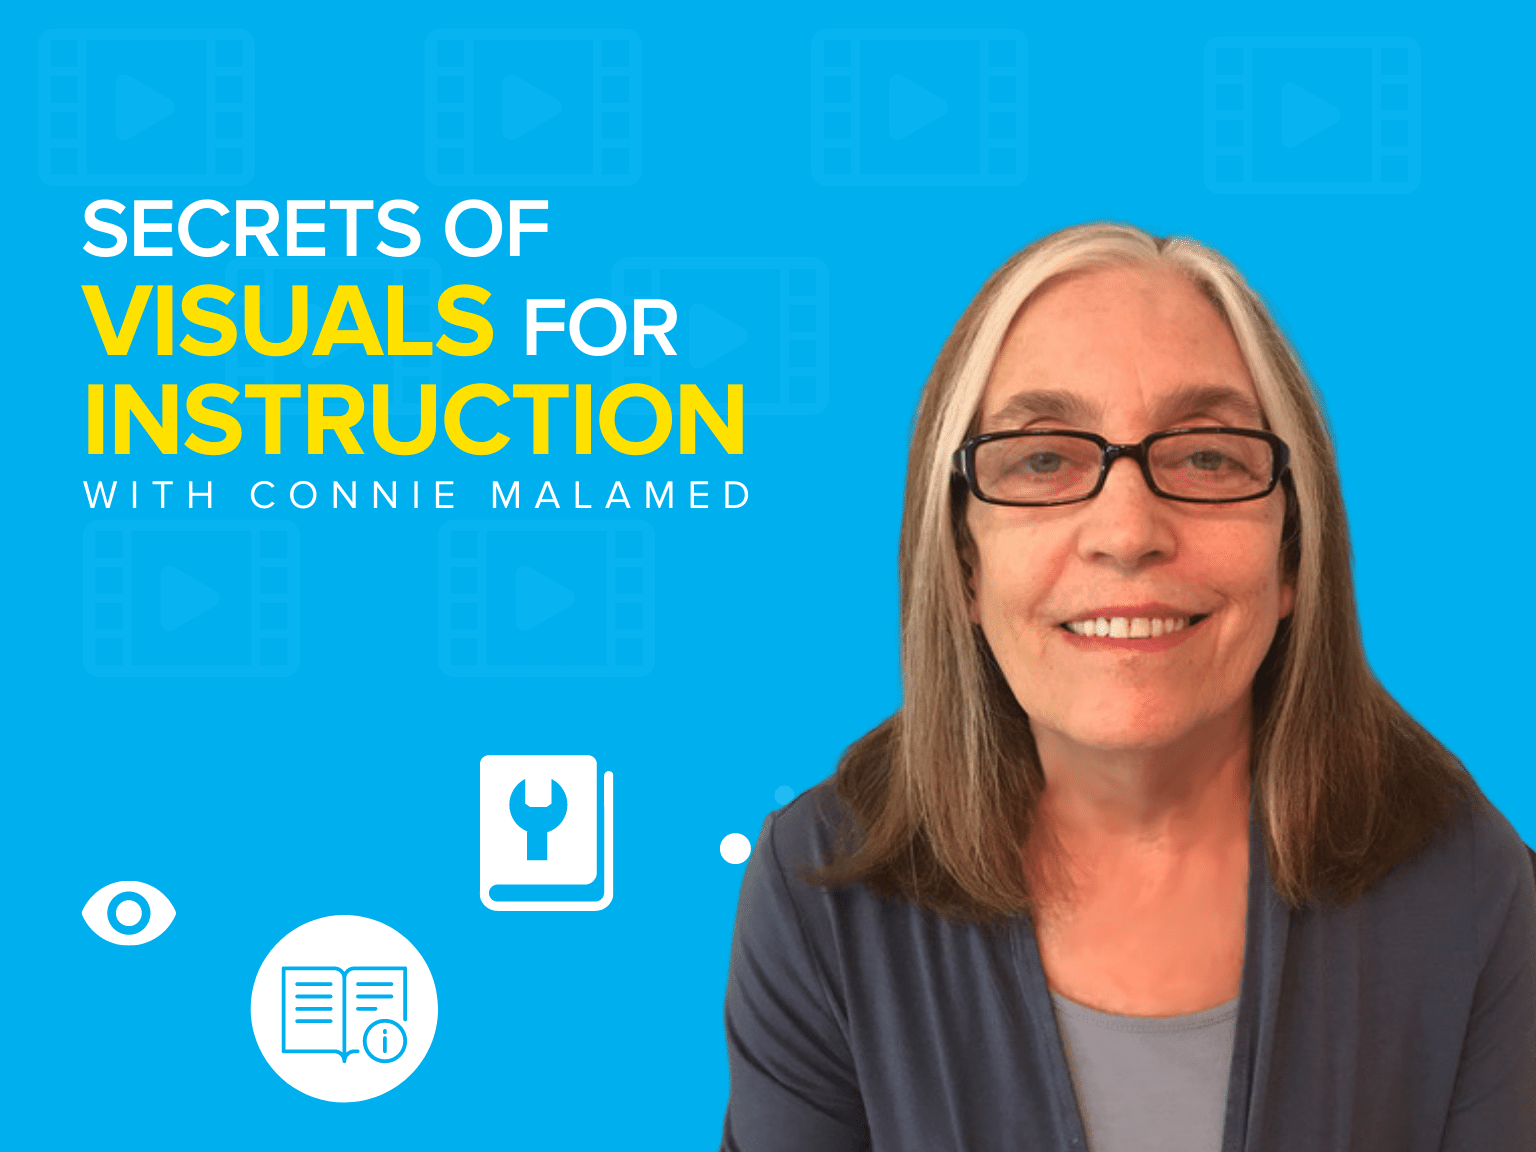 Secrets of Visuals for Instruction with Connie Malamed